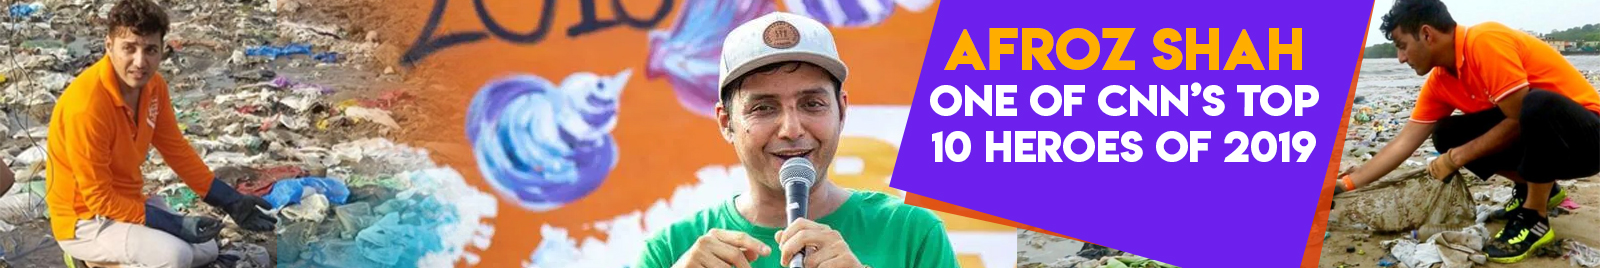 Afroz Shah: One of CNN's Top 10 Heroes Of 2019